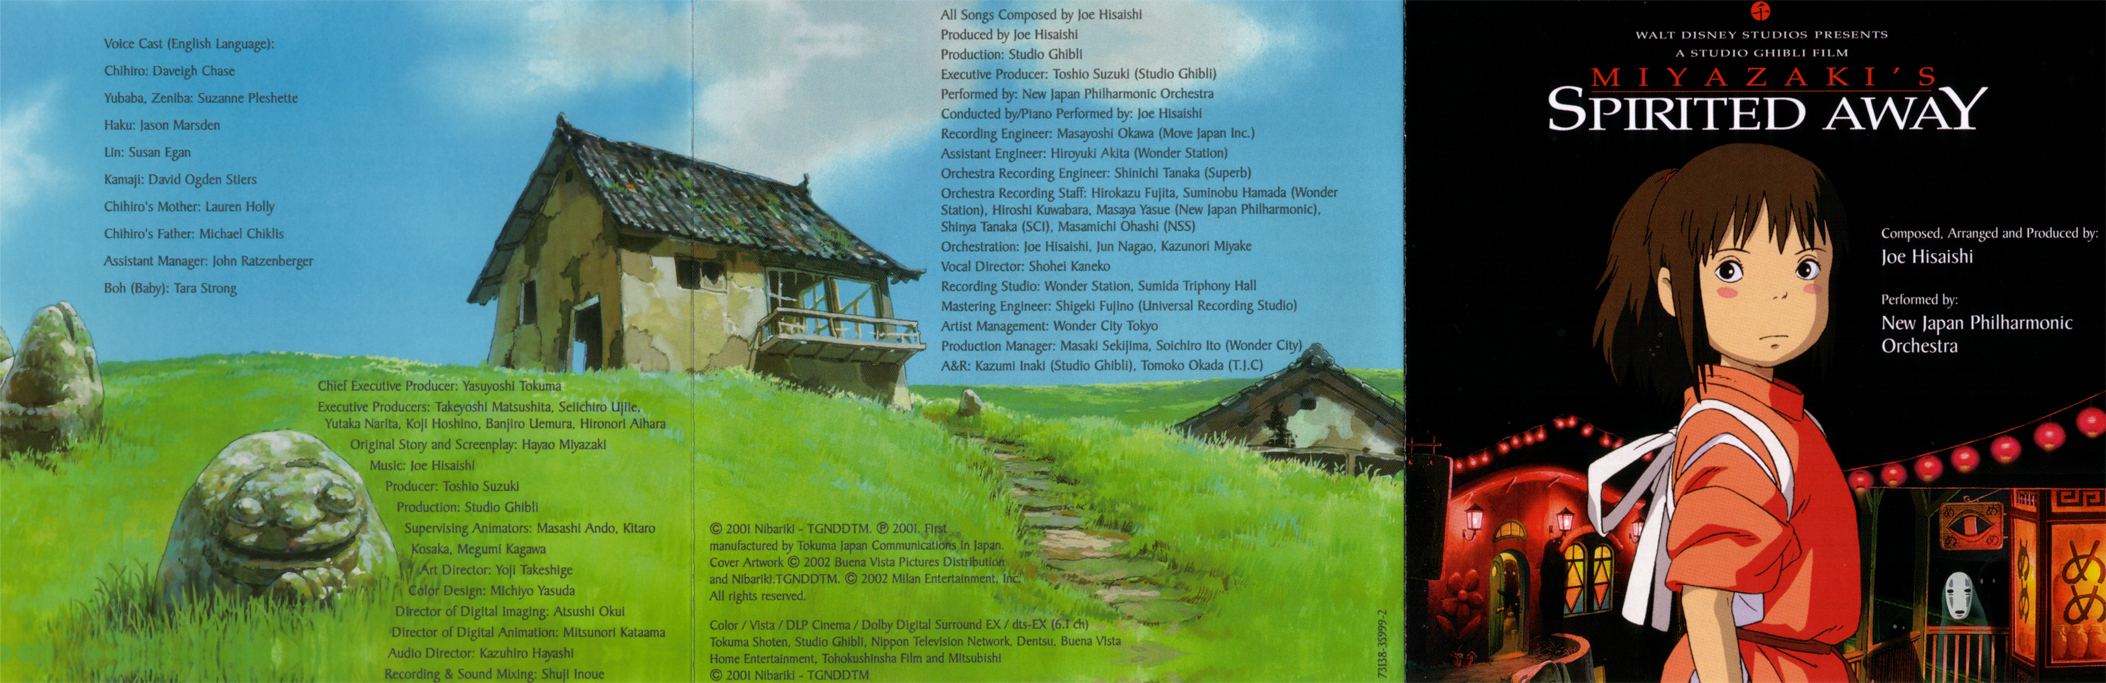 Covers Box Sk Spirited Away Soundtrack High Quality Dvd Blueray Movie